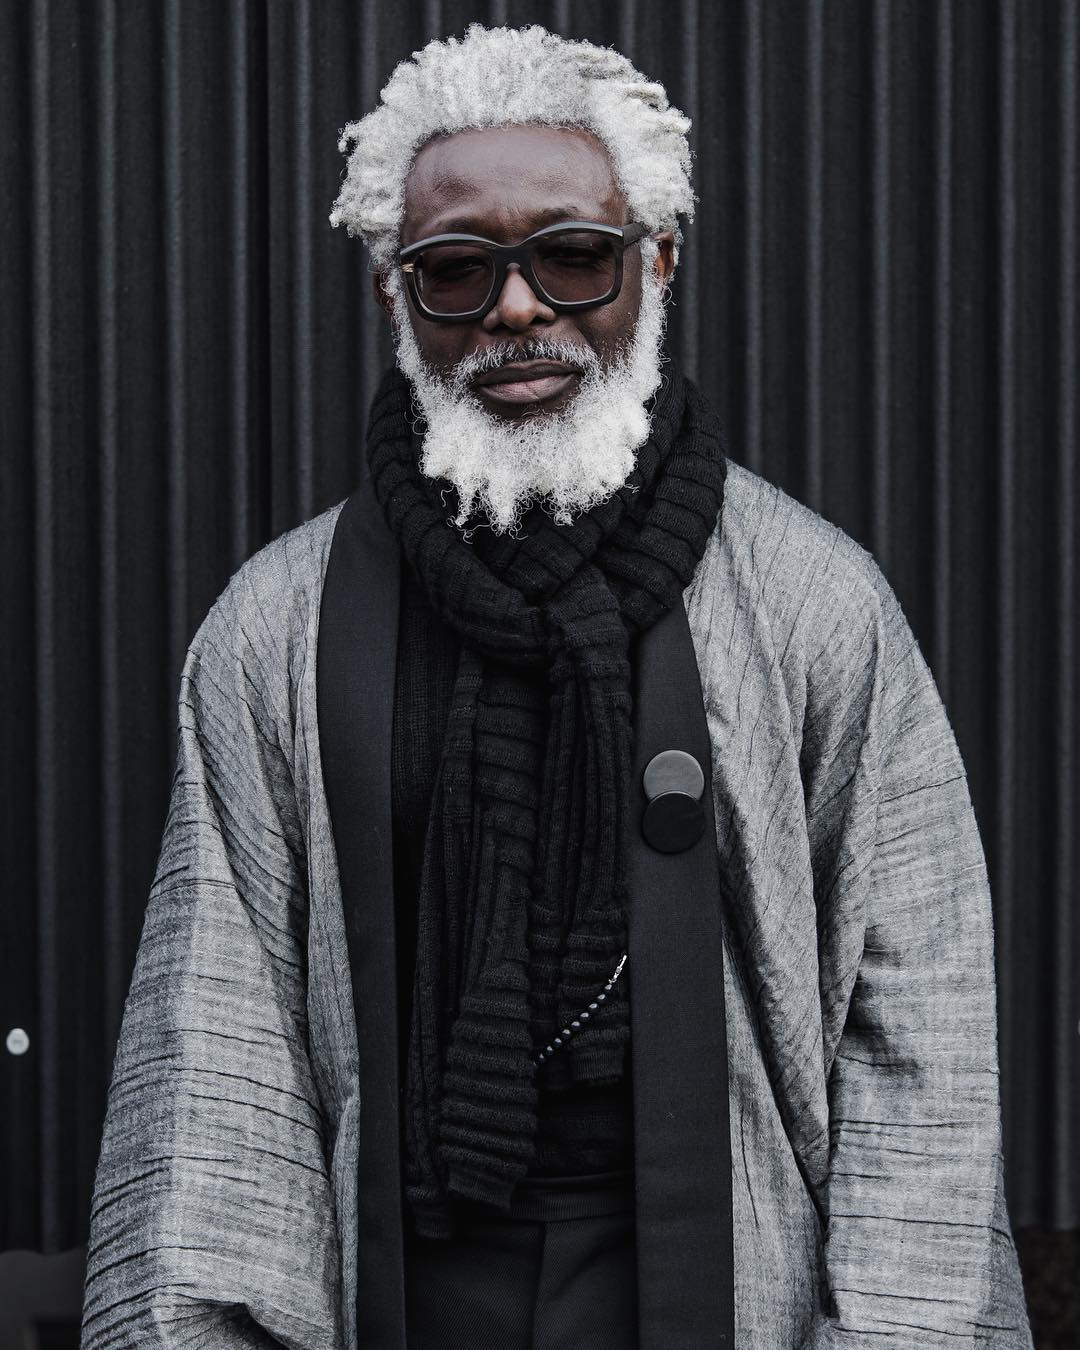 black man with white hair and beard